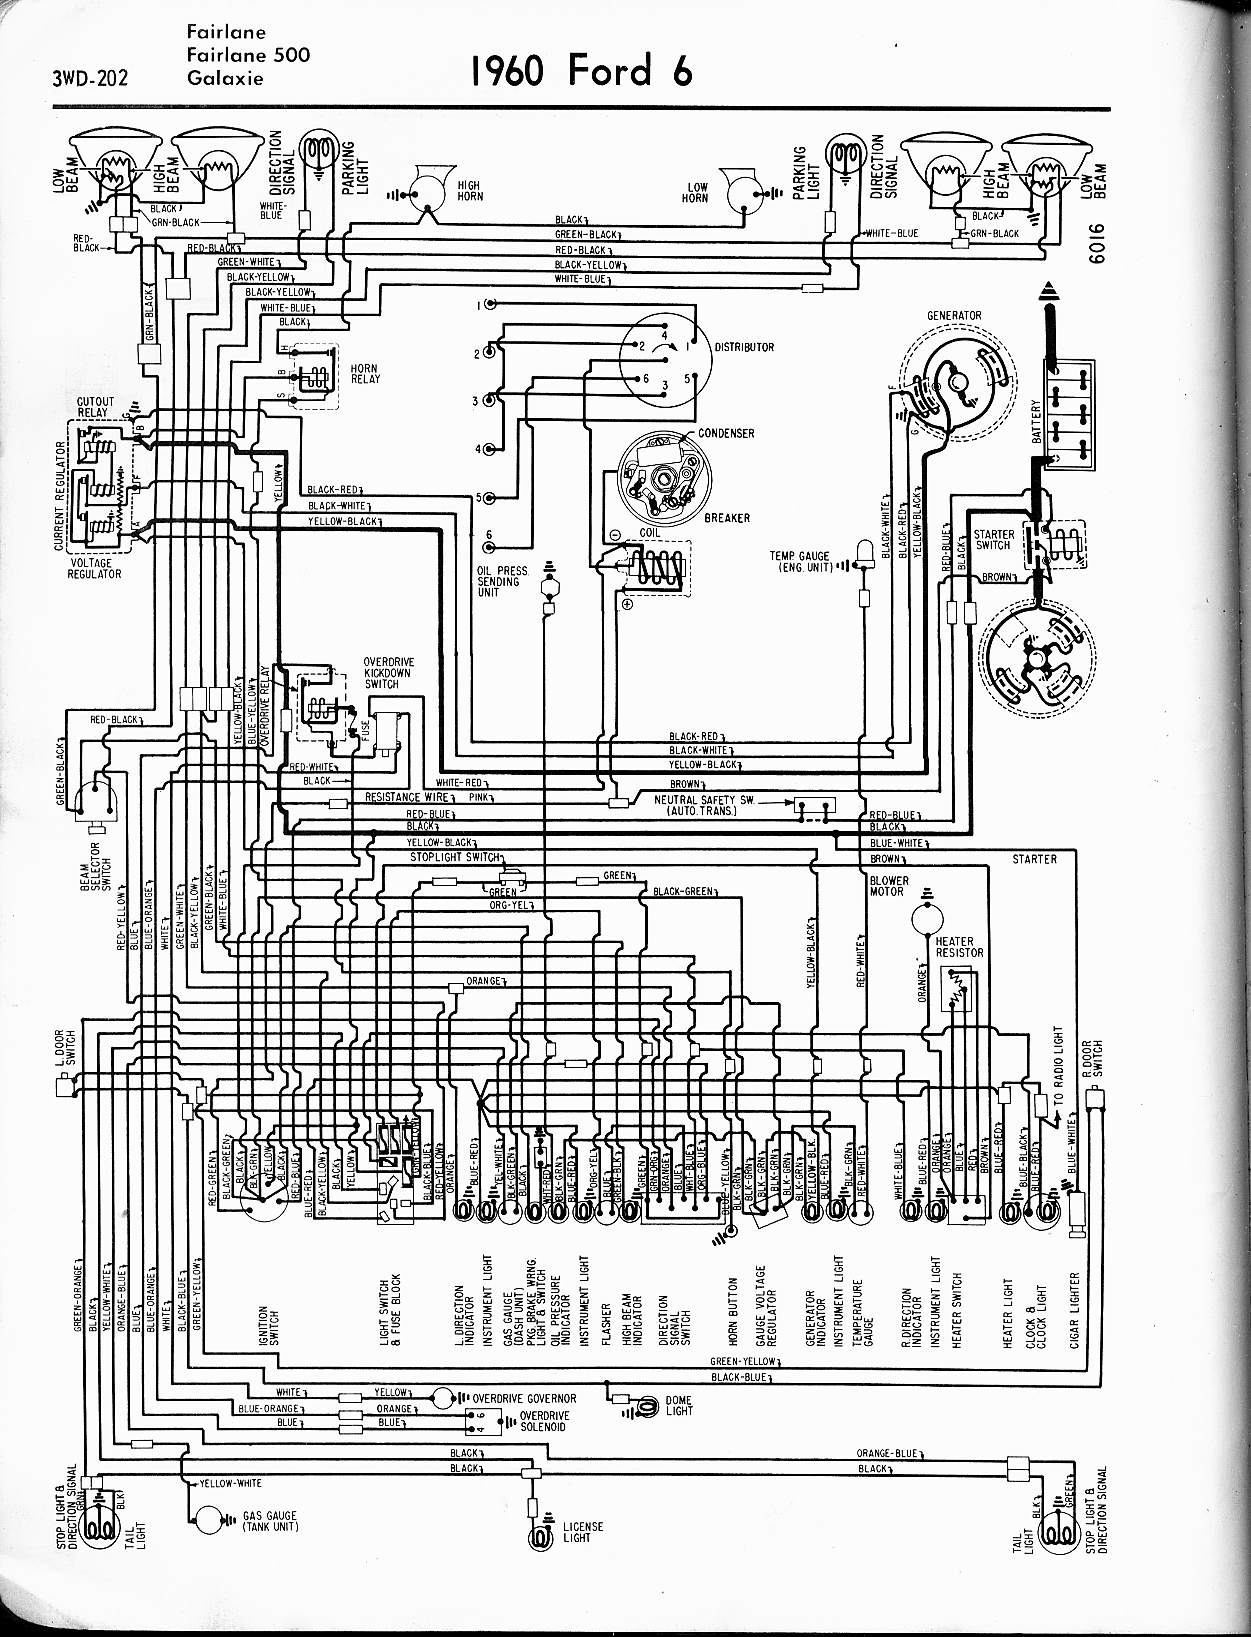 MWire5765 202 57 65 ford wiring diagrams on 1960 ford f100 wiring schematic